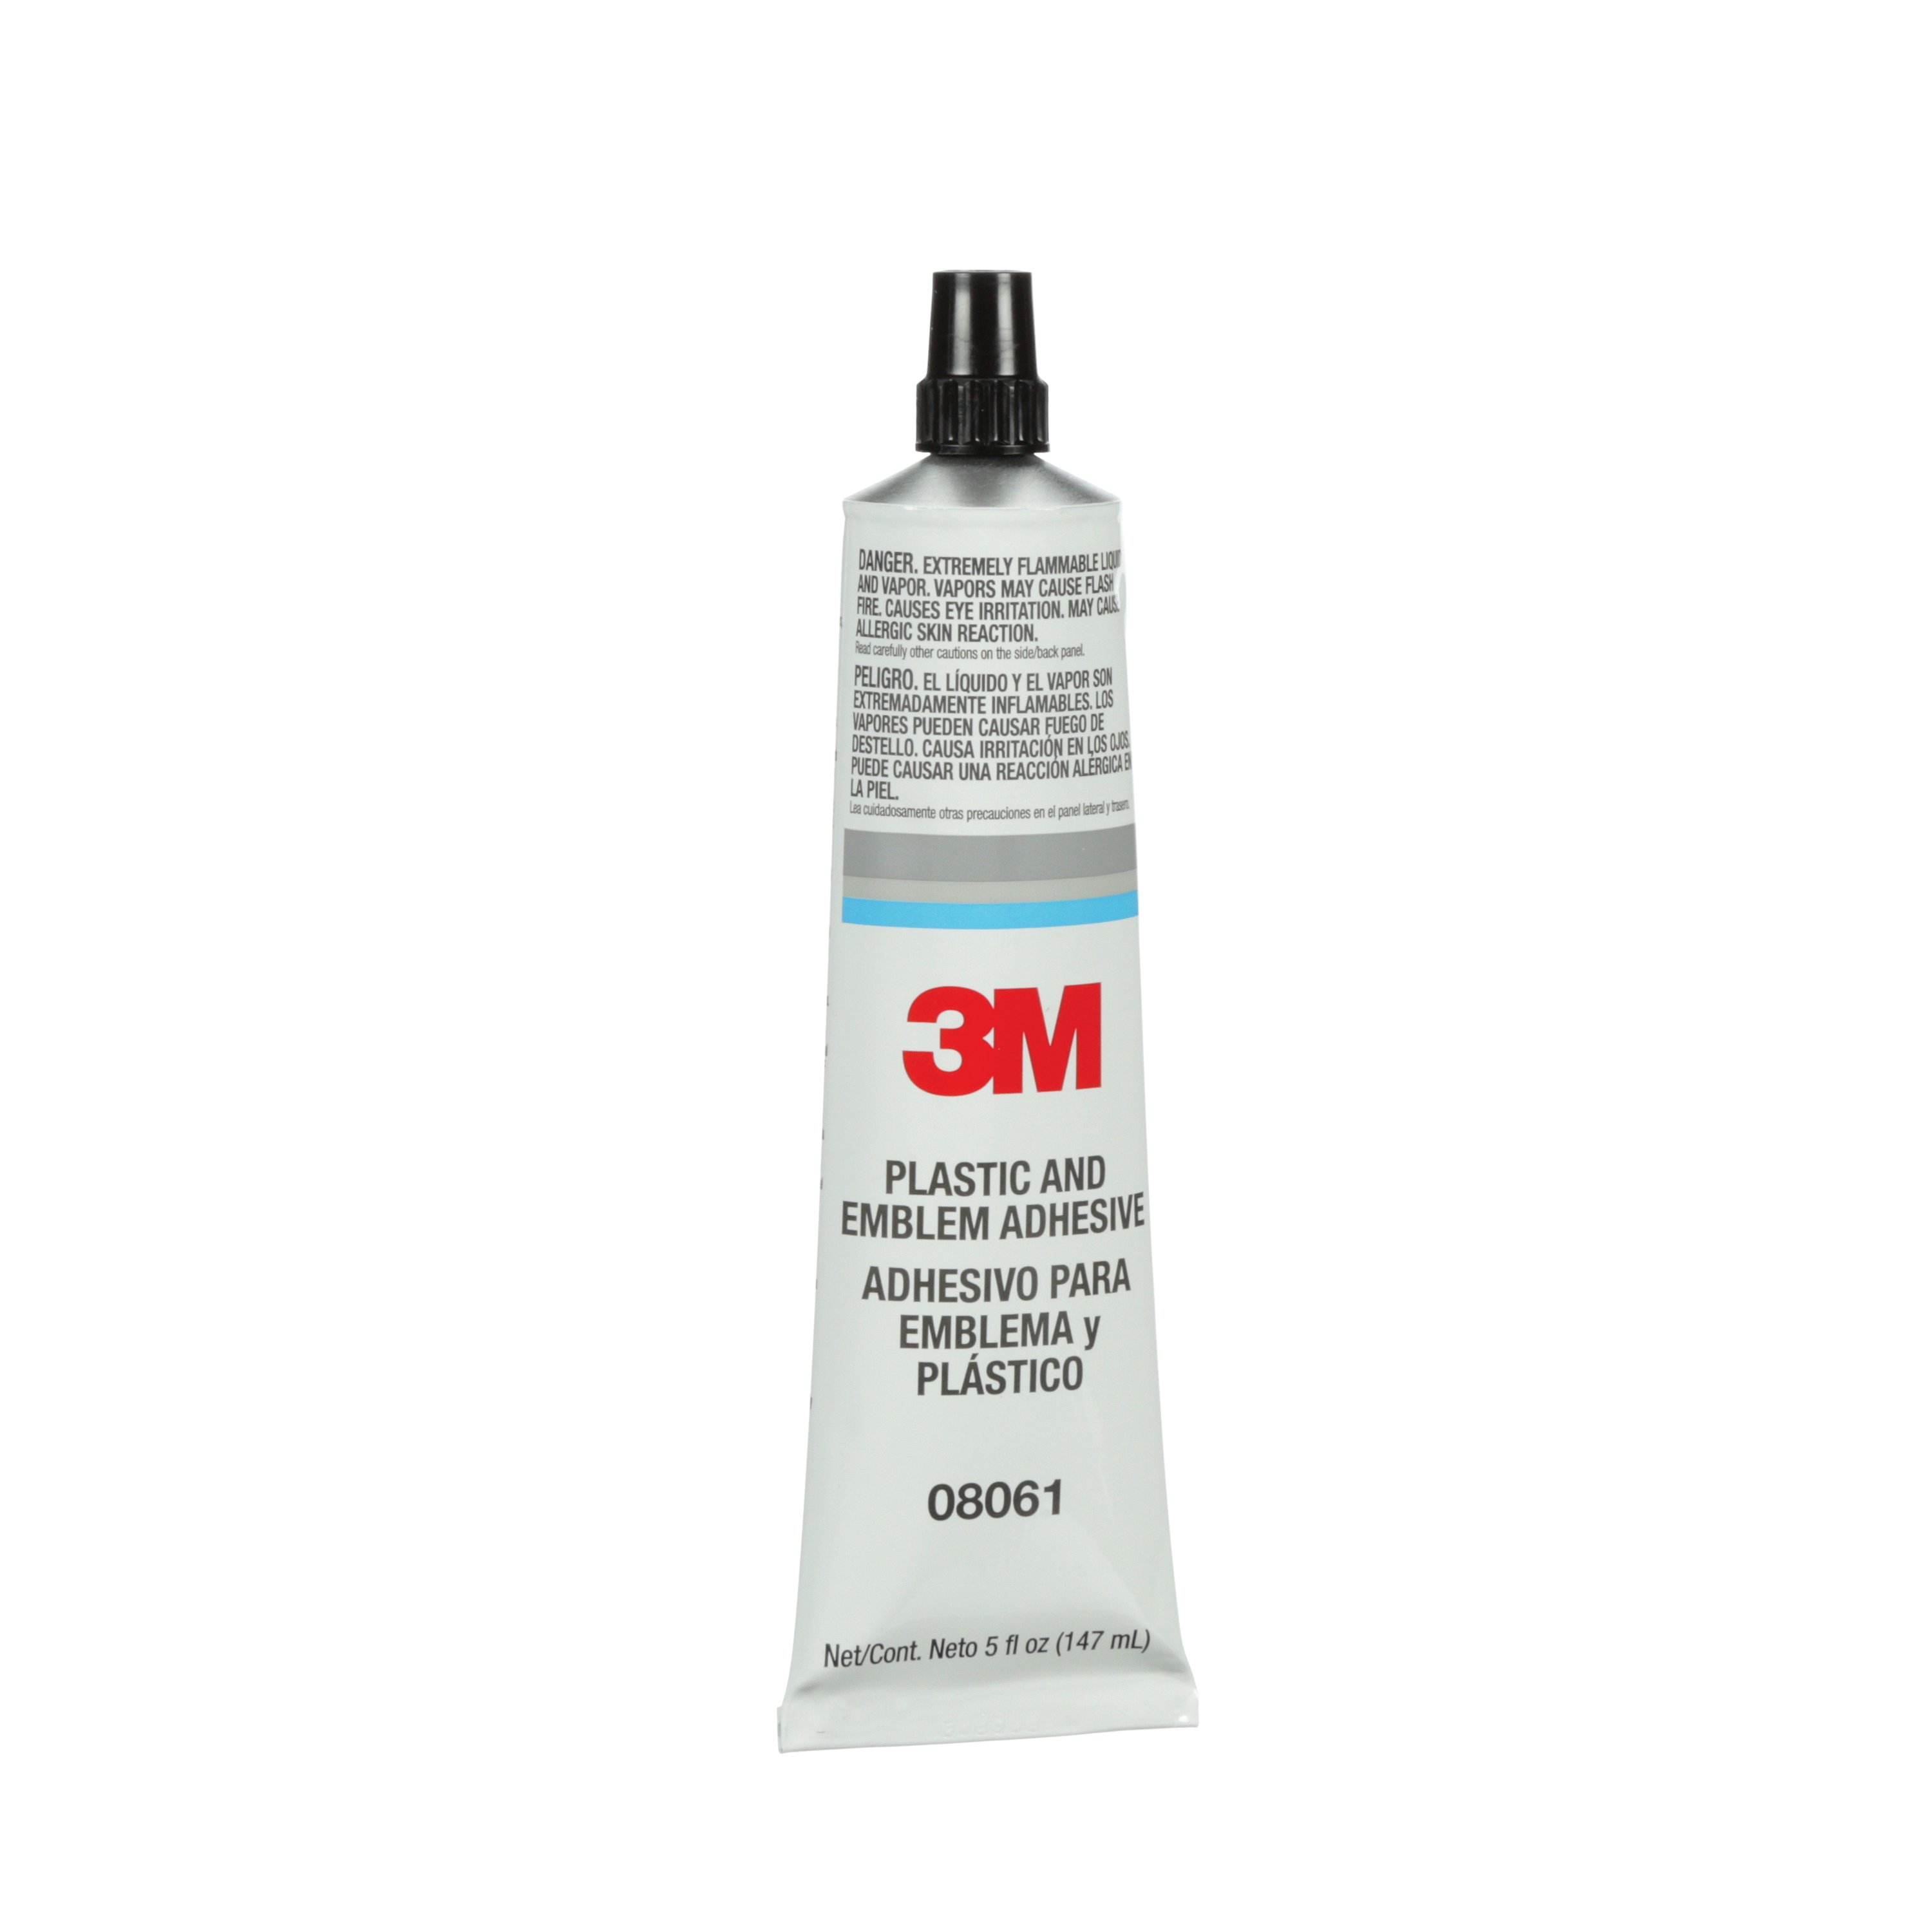 3M™ 051135-08061 Plastic and Emblem Adhesive, 5 oz Tube, Clear